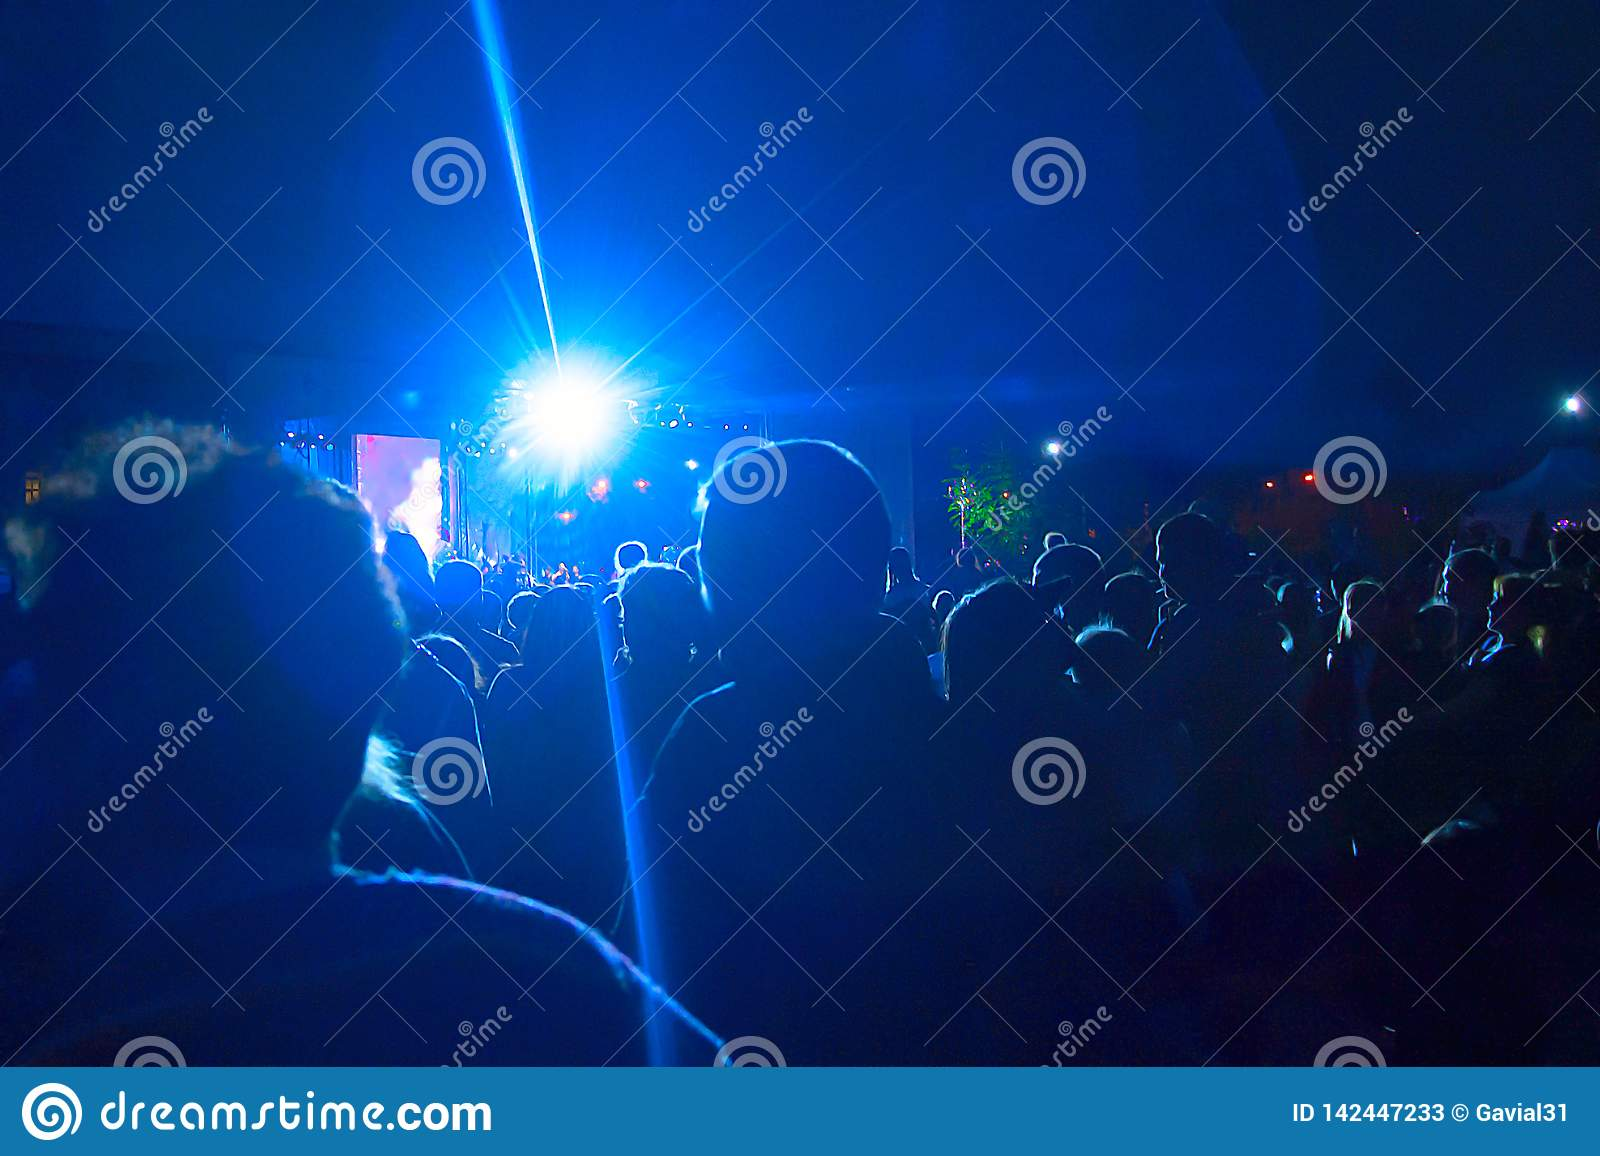 Silhouettes of a large number of people on the background of spotlights. Concept: celebration, rally